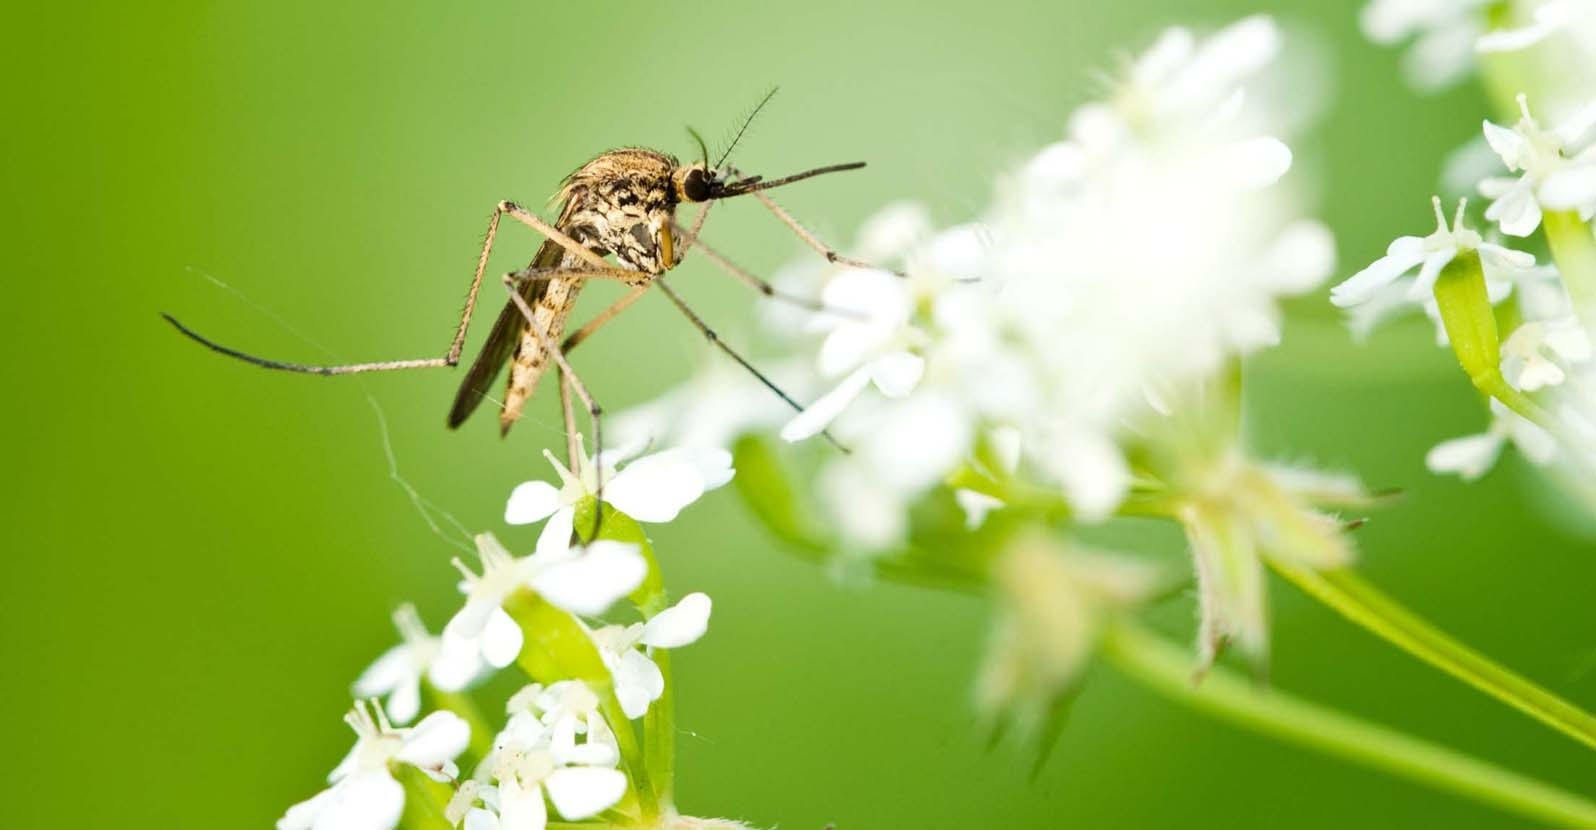 15 Plants That Safely Repel Mosquitos